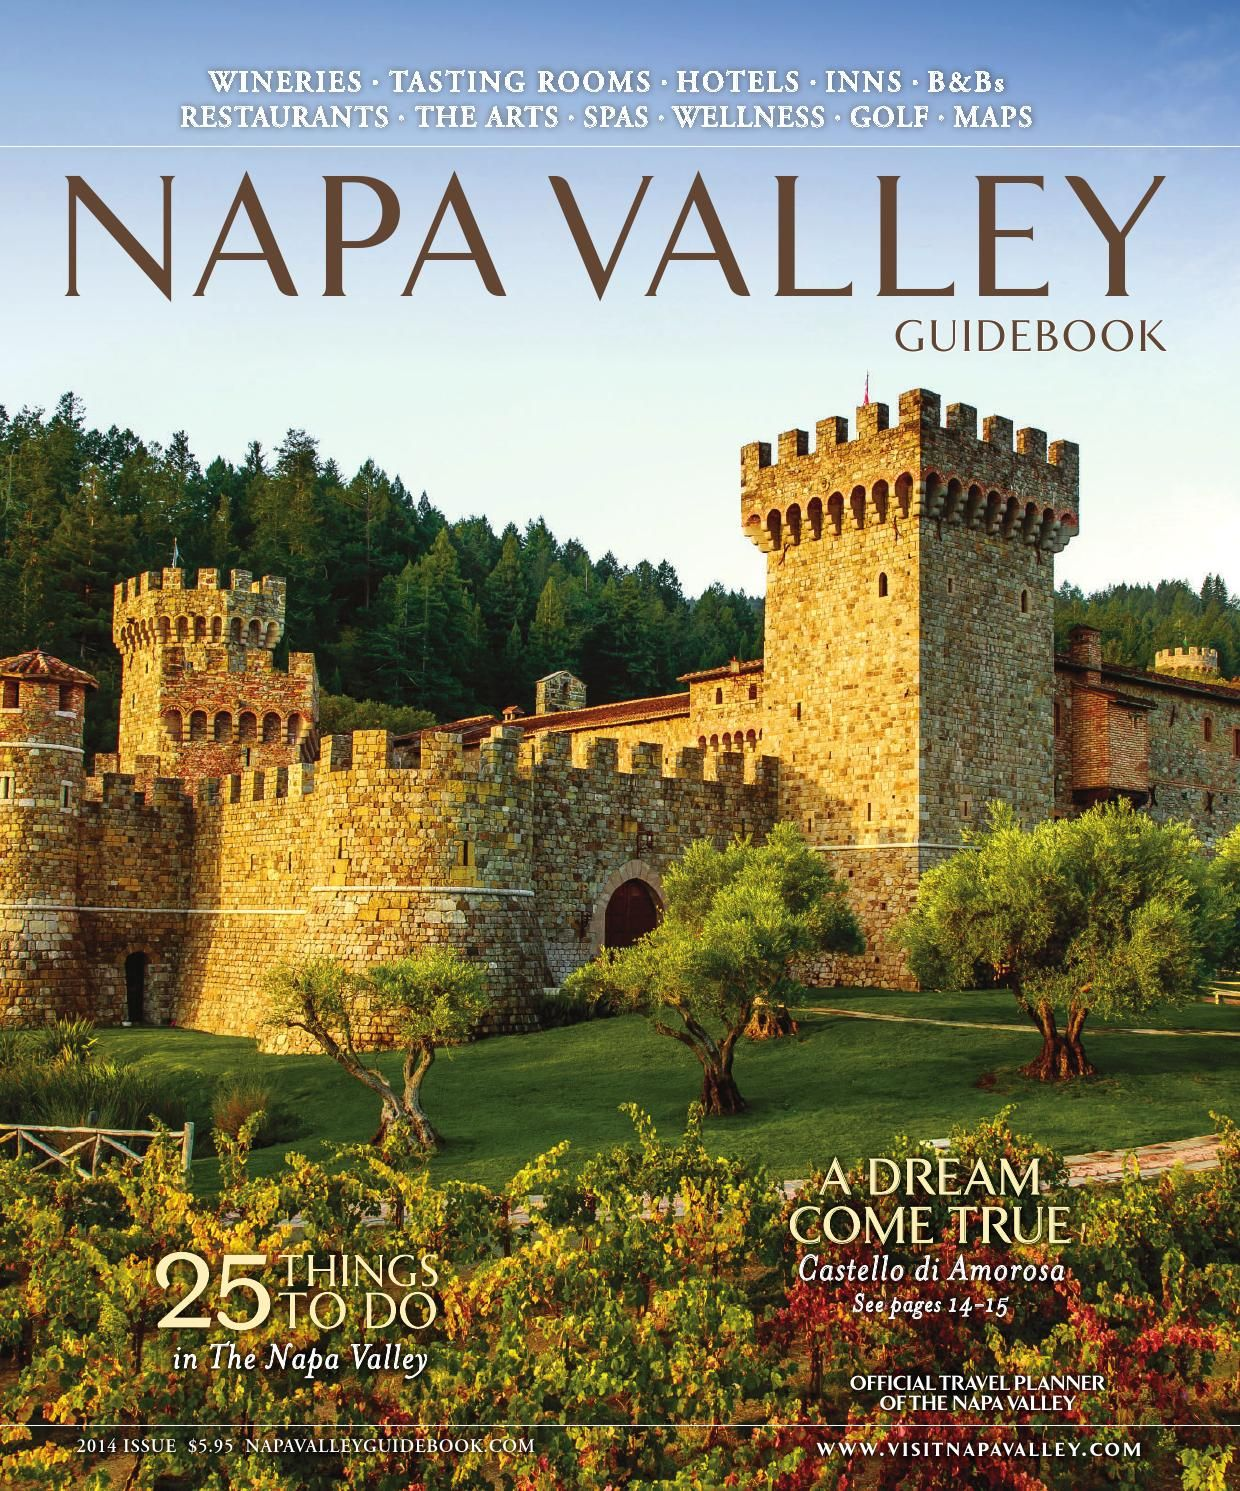 The Napa Valley Guidebook is your comprehensive guide to all things Napa Valley. Find hotels, wineries, restaurants, arts and culture, spas, shopping, outdoor adventures and more.